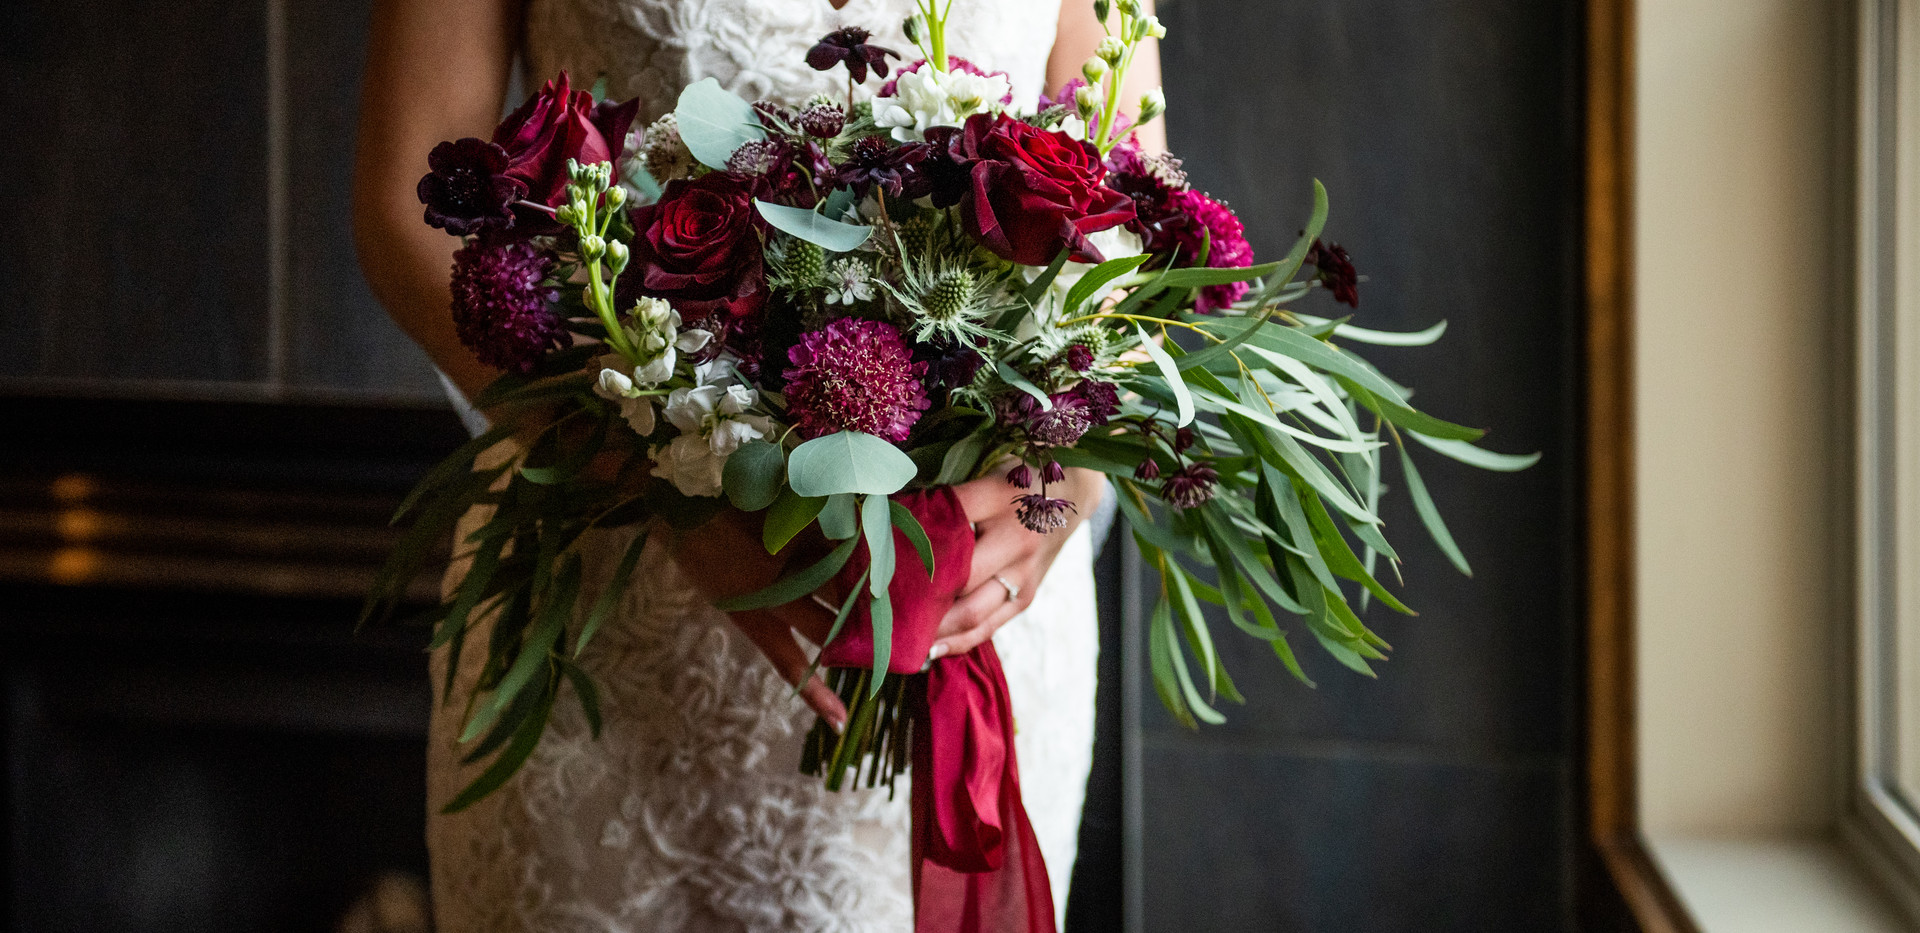 Merlot Winter Wedding Bouquet